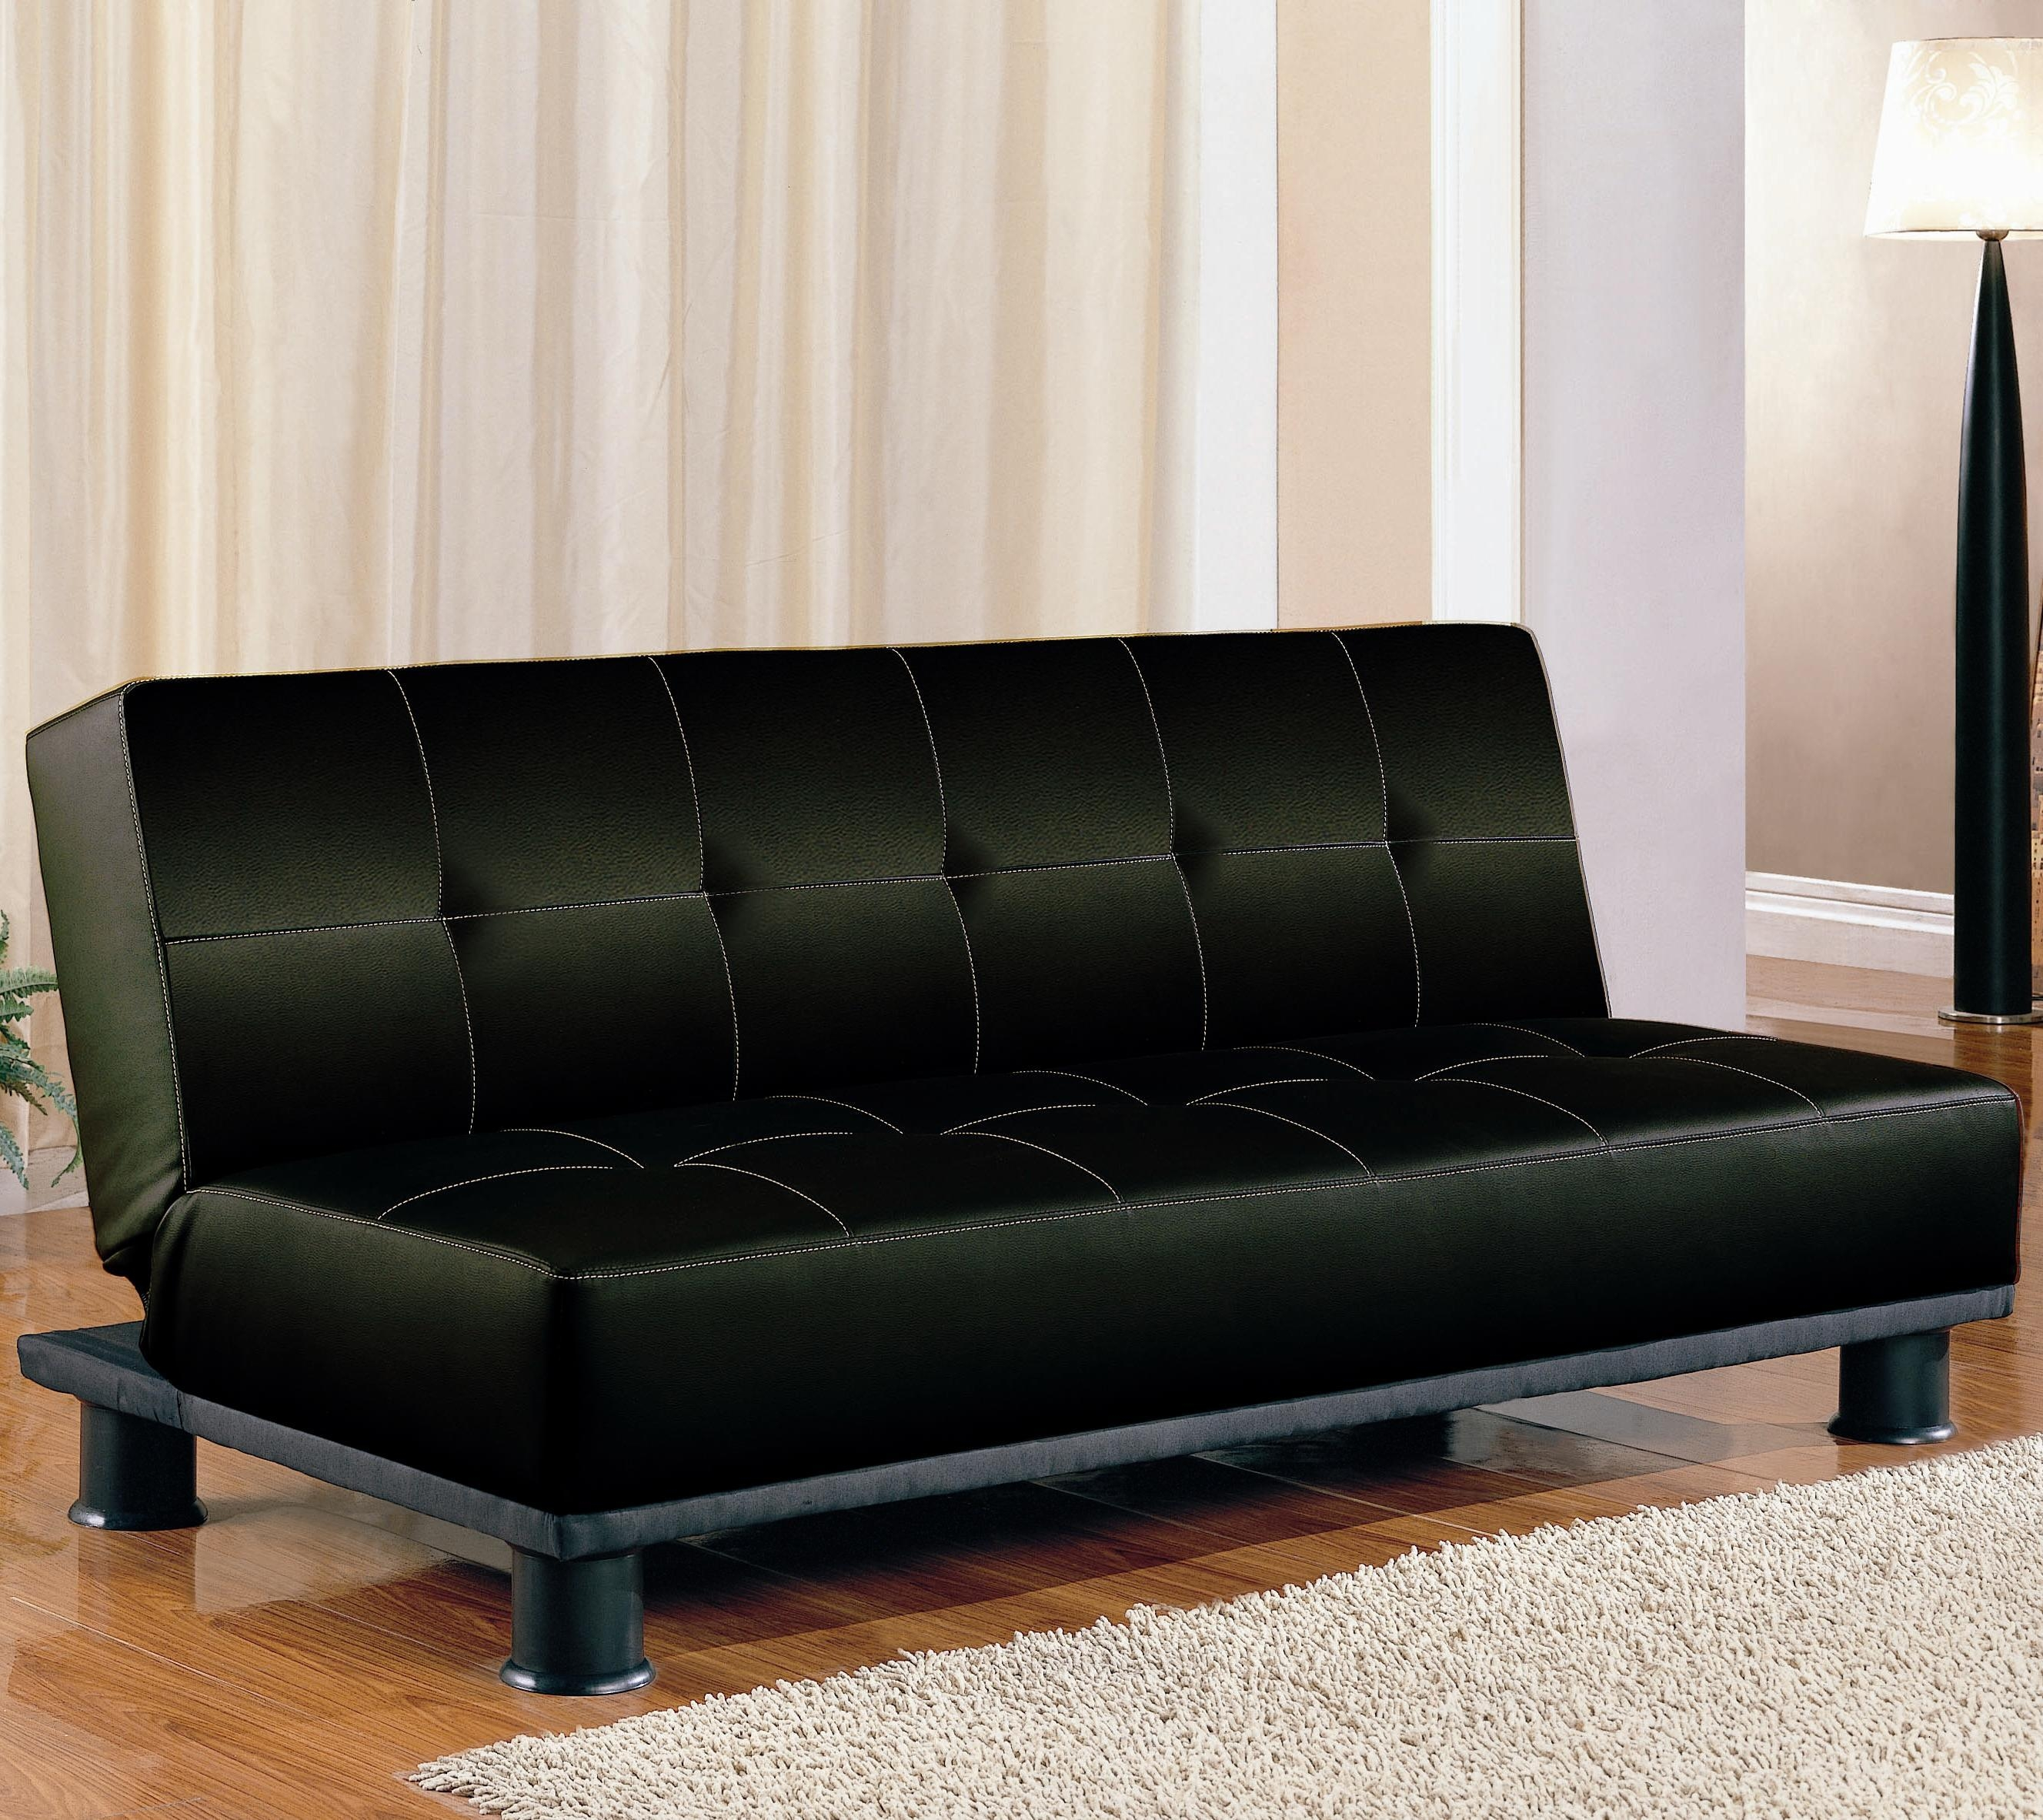 Most Comfortable Sofa Bed Reviews Uk – Bedding | Bed Linen Regarding Most Comfortable Sofabed (View 22 of 22)